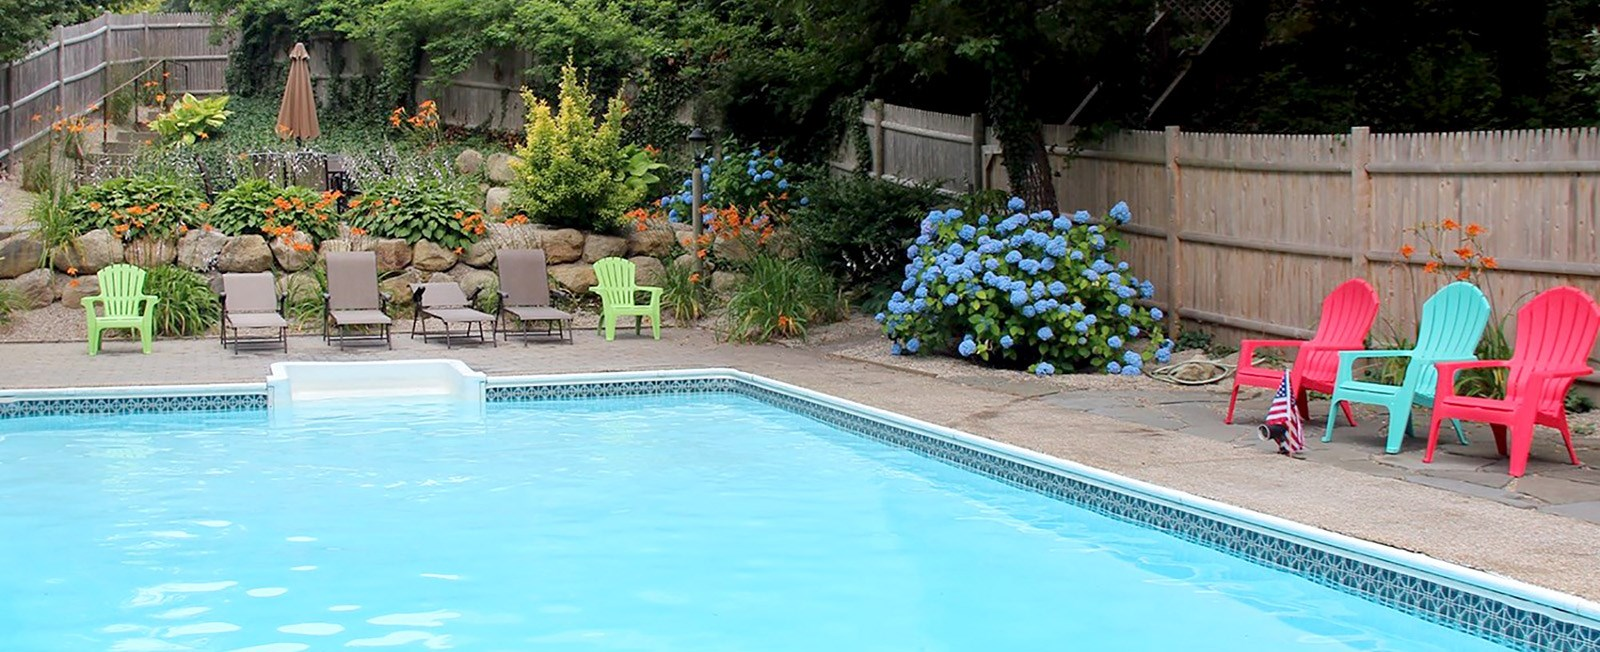 Vacationing on the Cape and Islands is pretty incredible. Staying in a home with its own private pool is simply amazing!